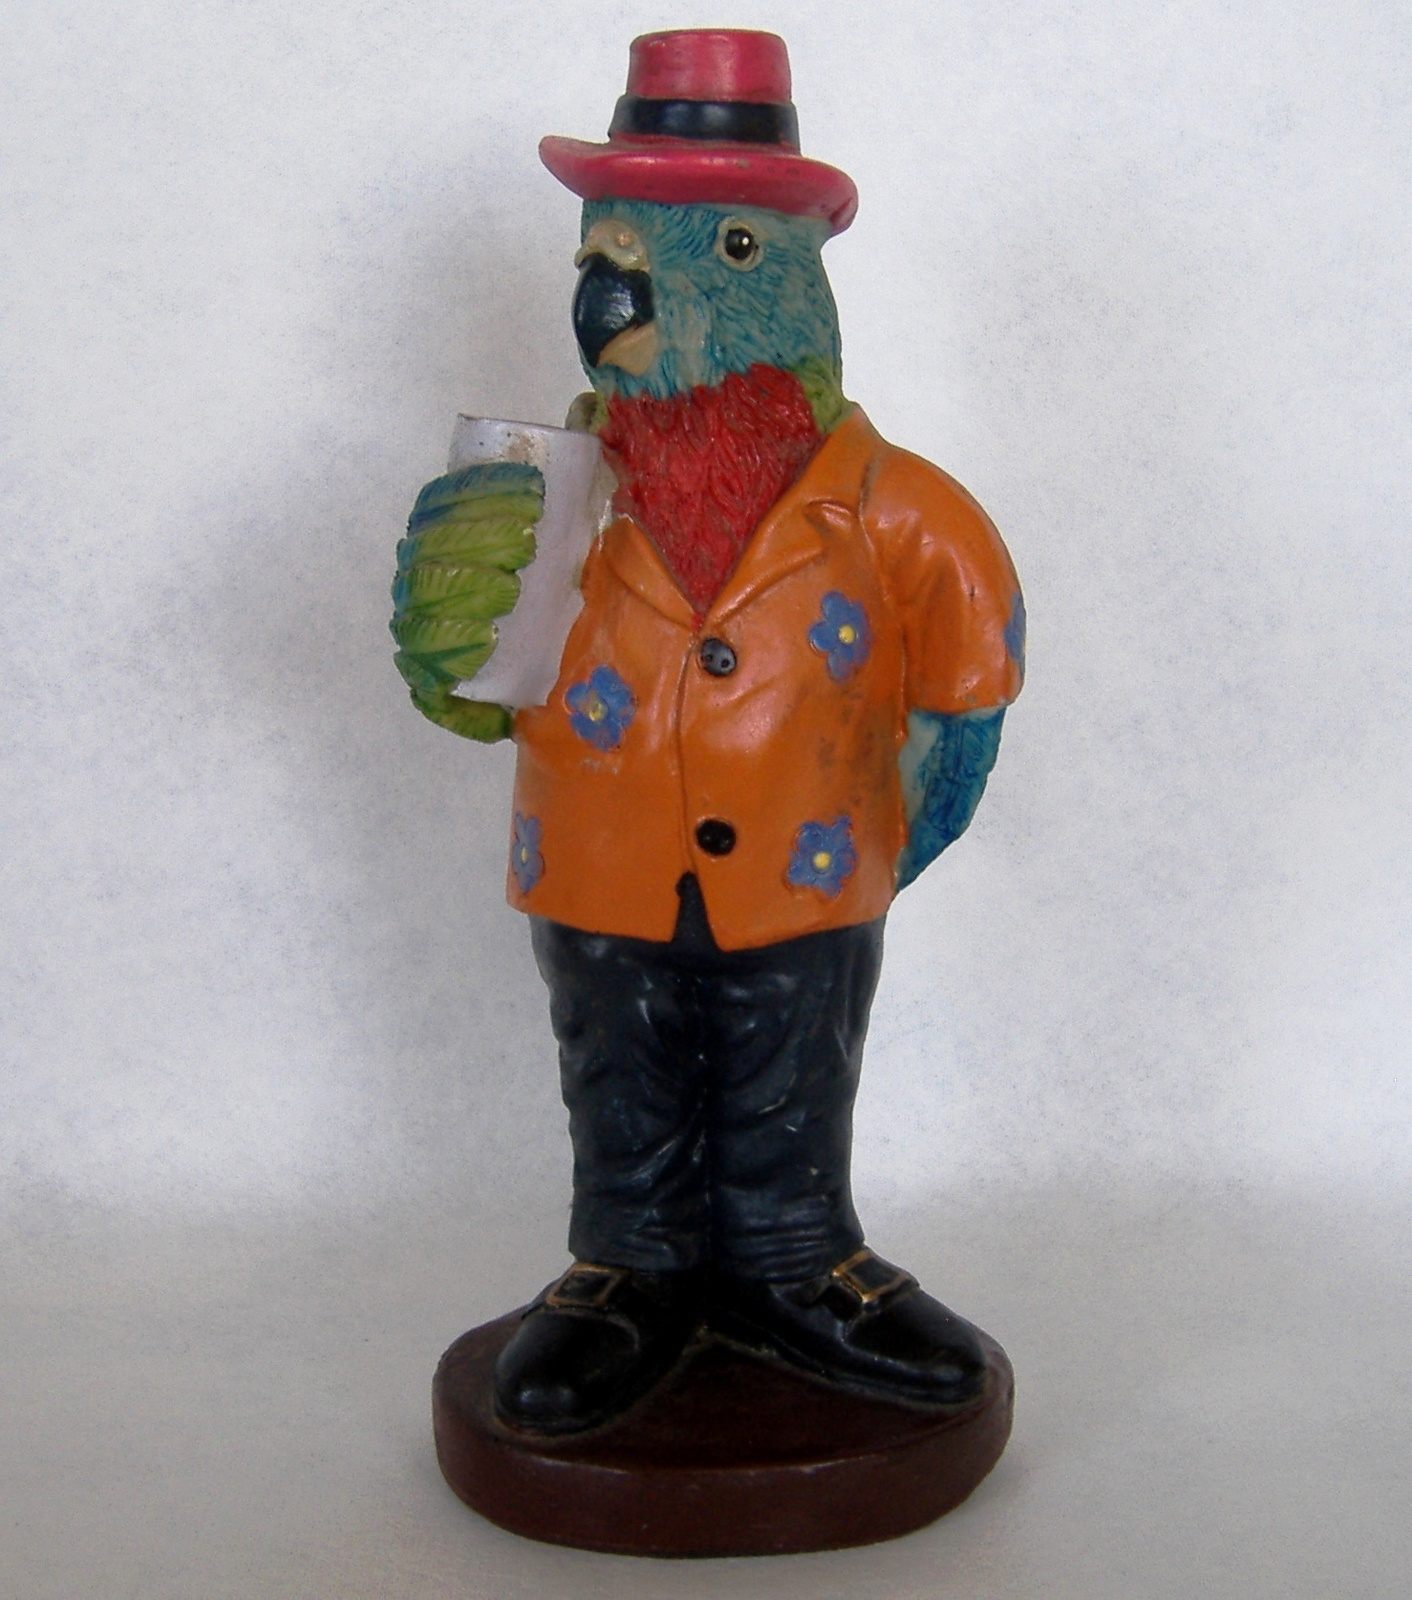 Primary image for Parrot Statue Figurine Hawaiian Shirt Hat Drink Whimsical Bird Animal Colorful